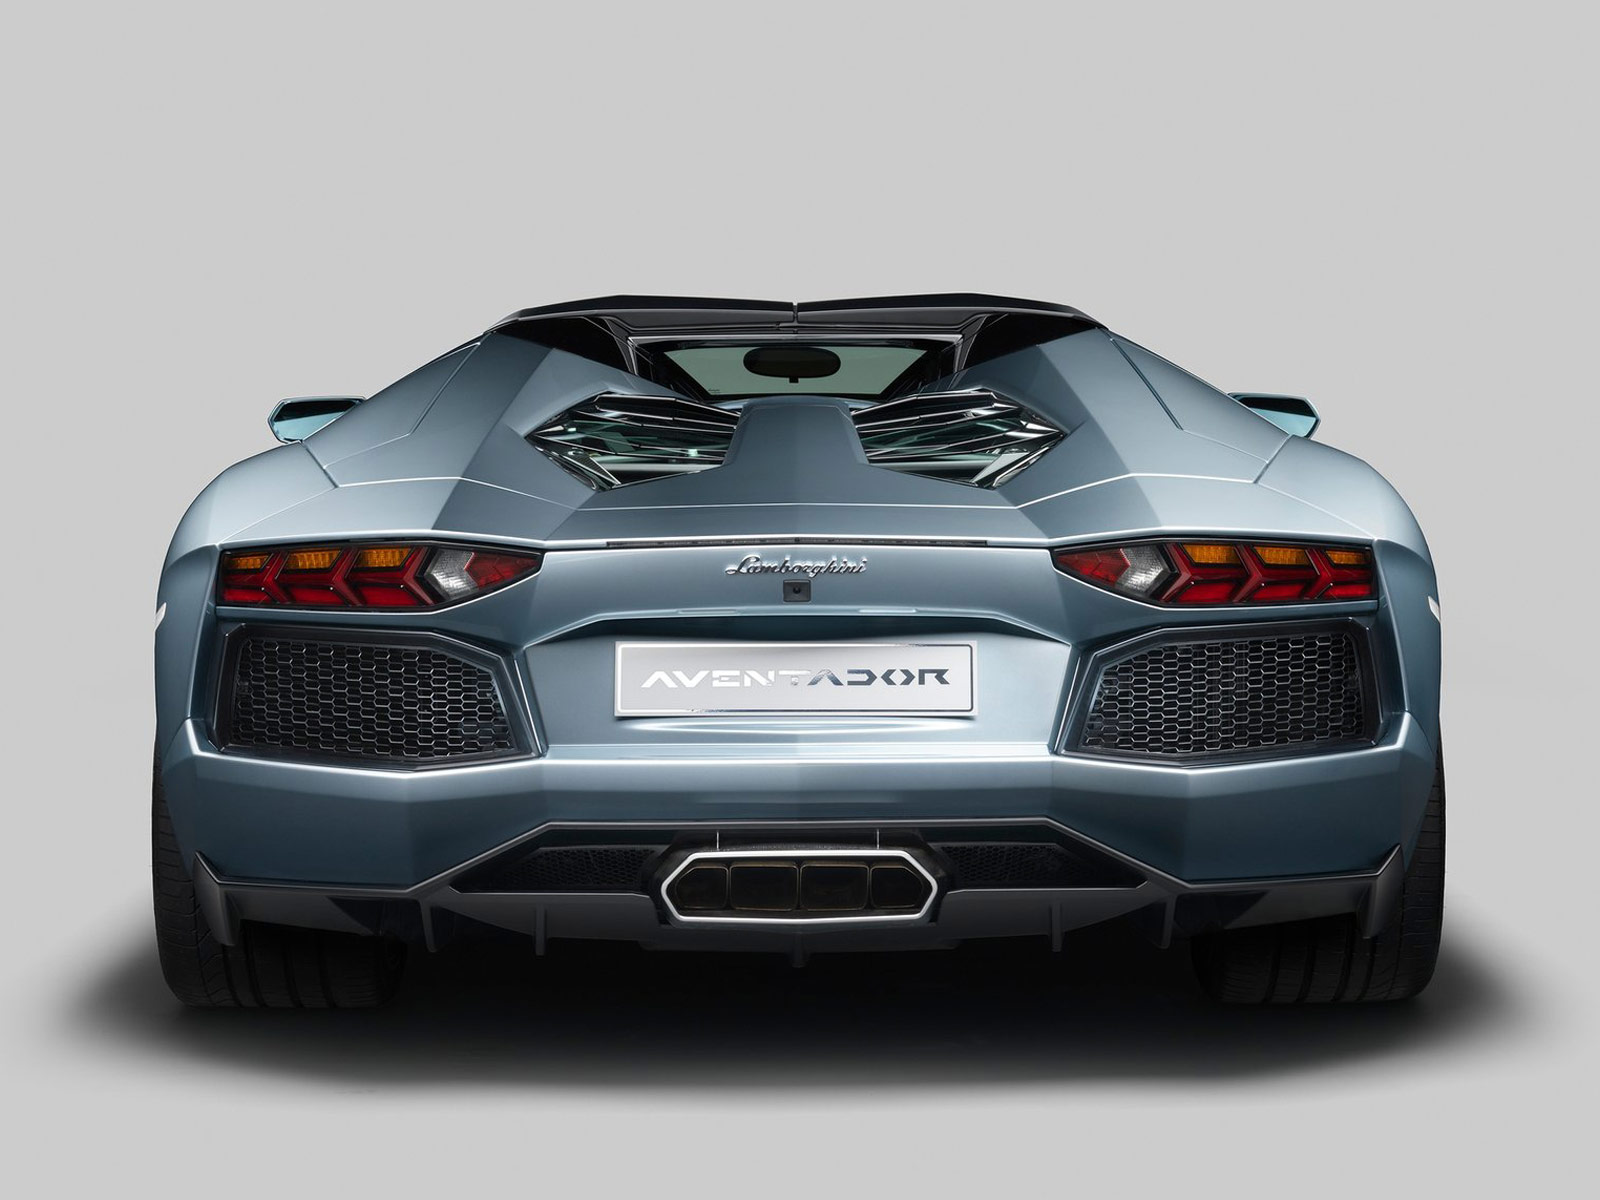 Lamborghini Pictures Car Insurance Accident Lawyers Info